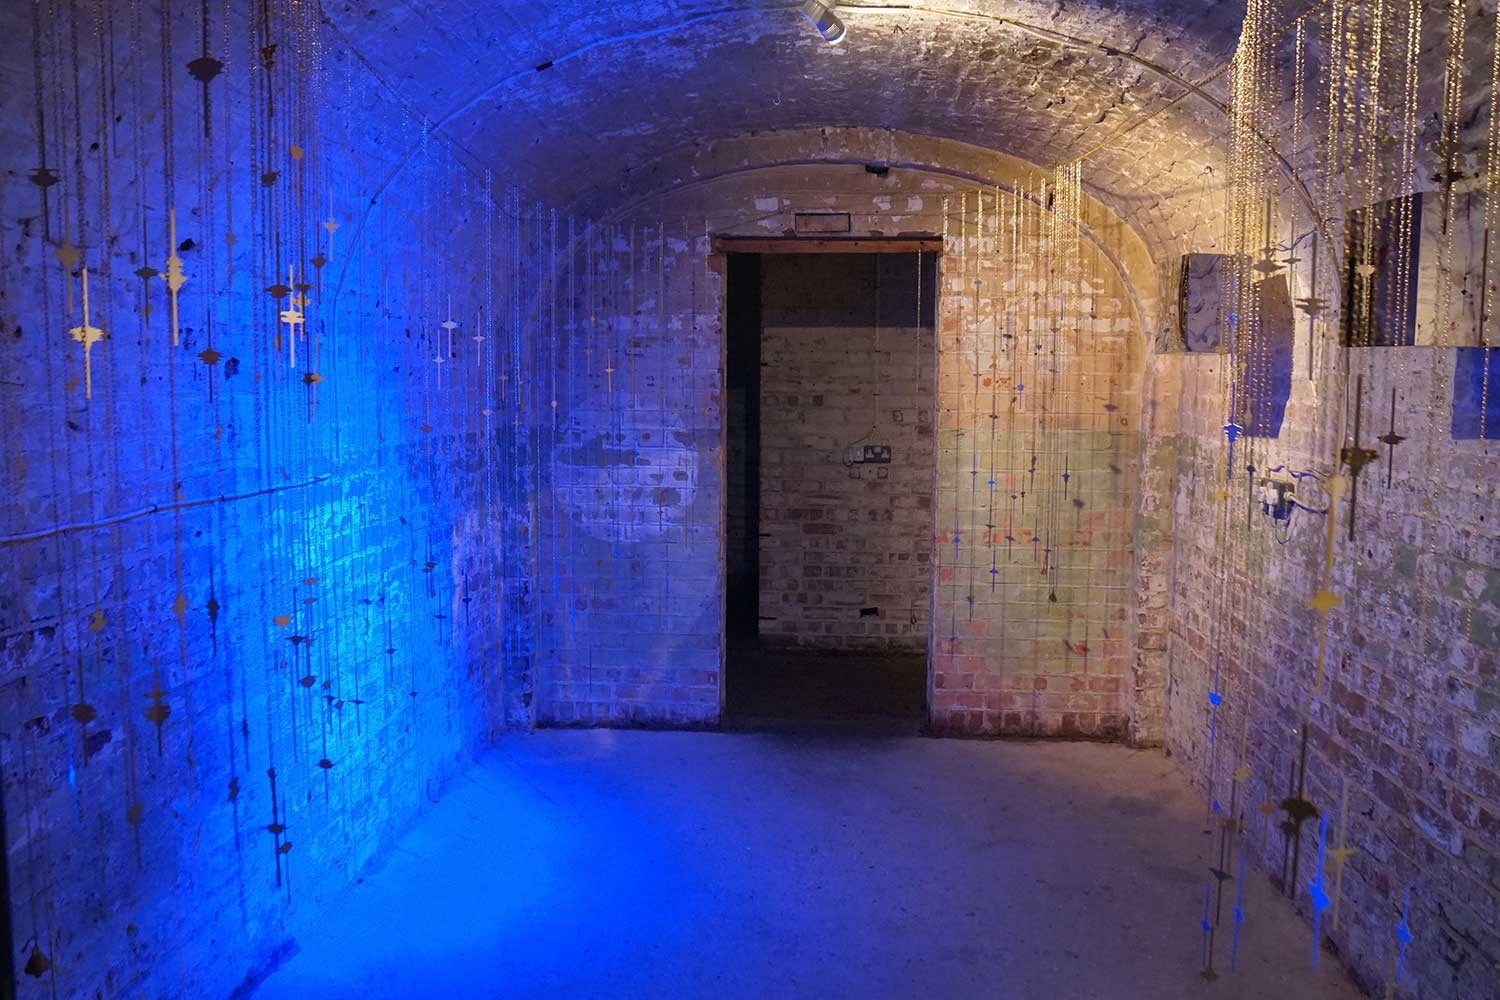 The Blue Hour (2019) A mixed media installation by Caro Williams Contemporary Art + Ritual, Crypt Gallery, London